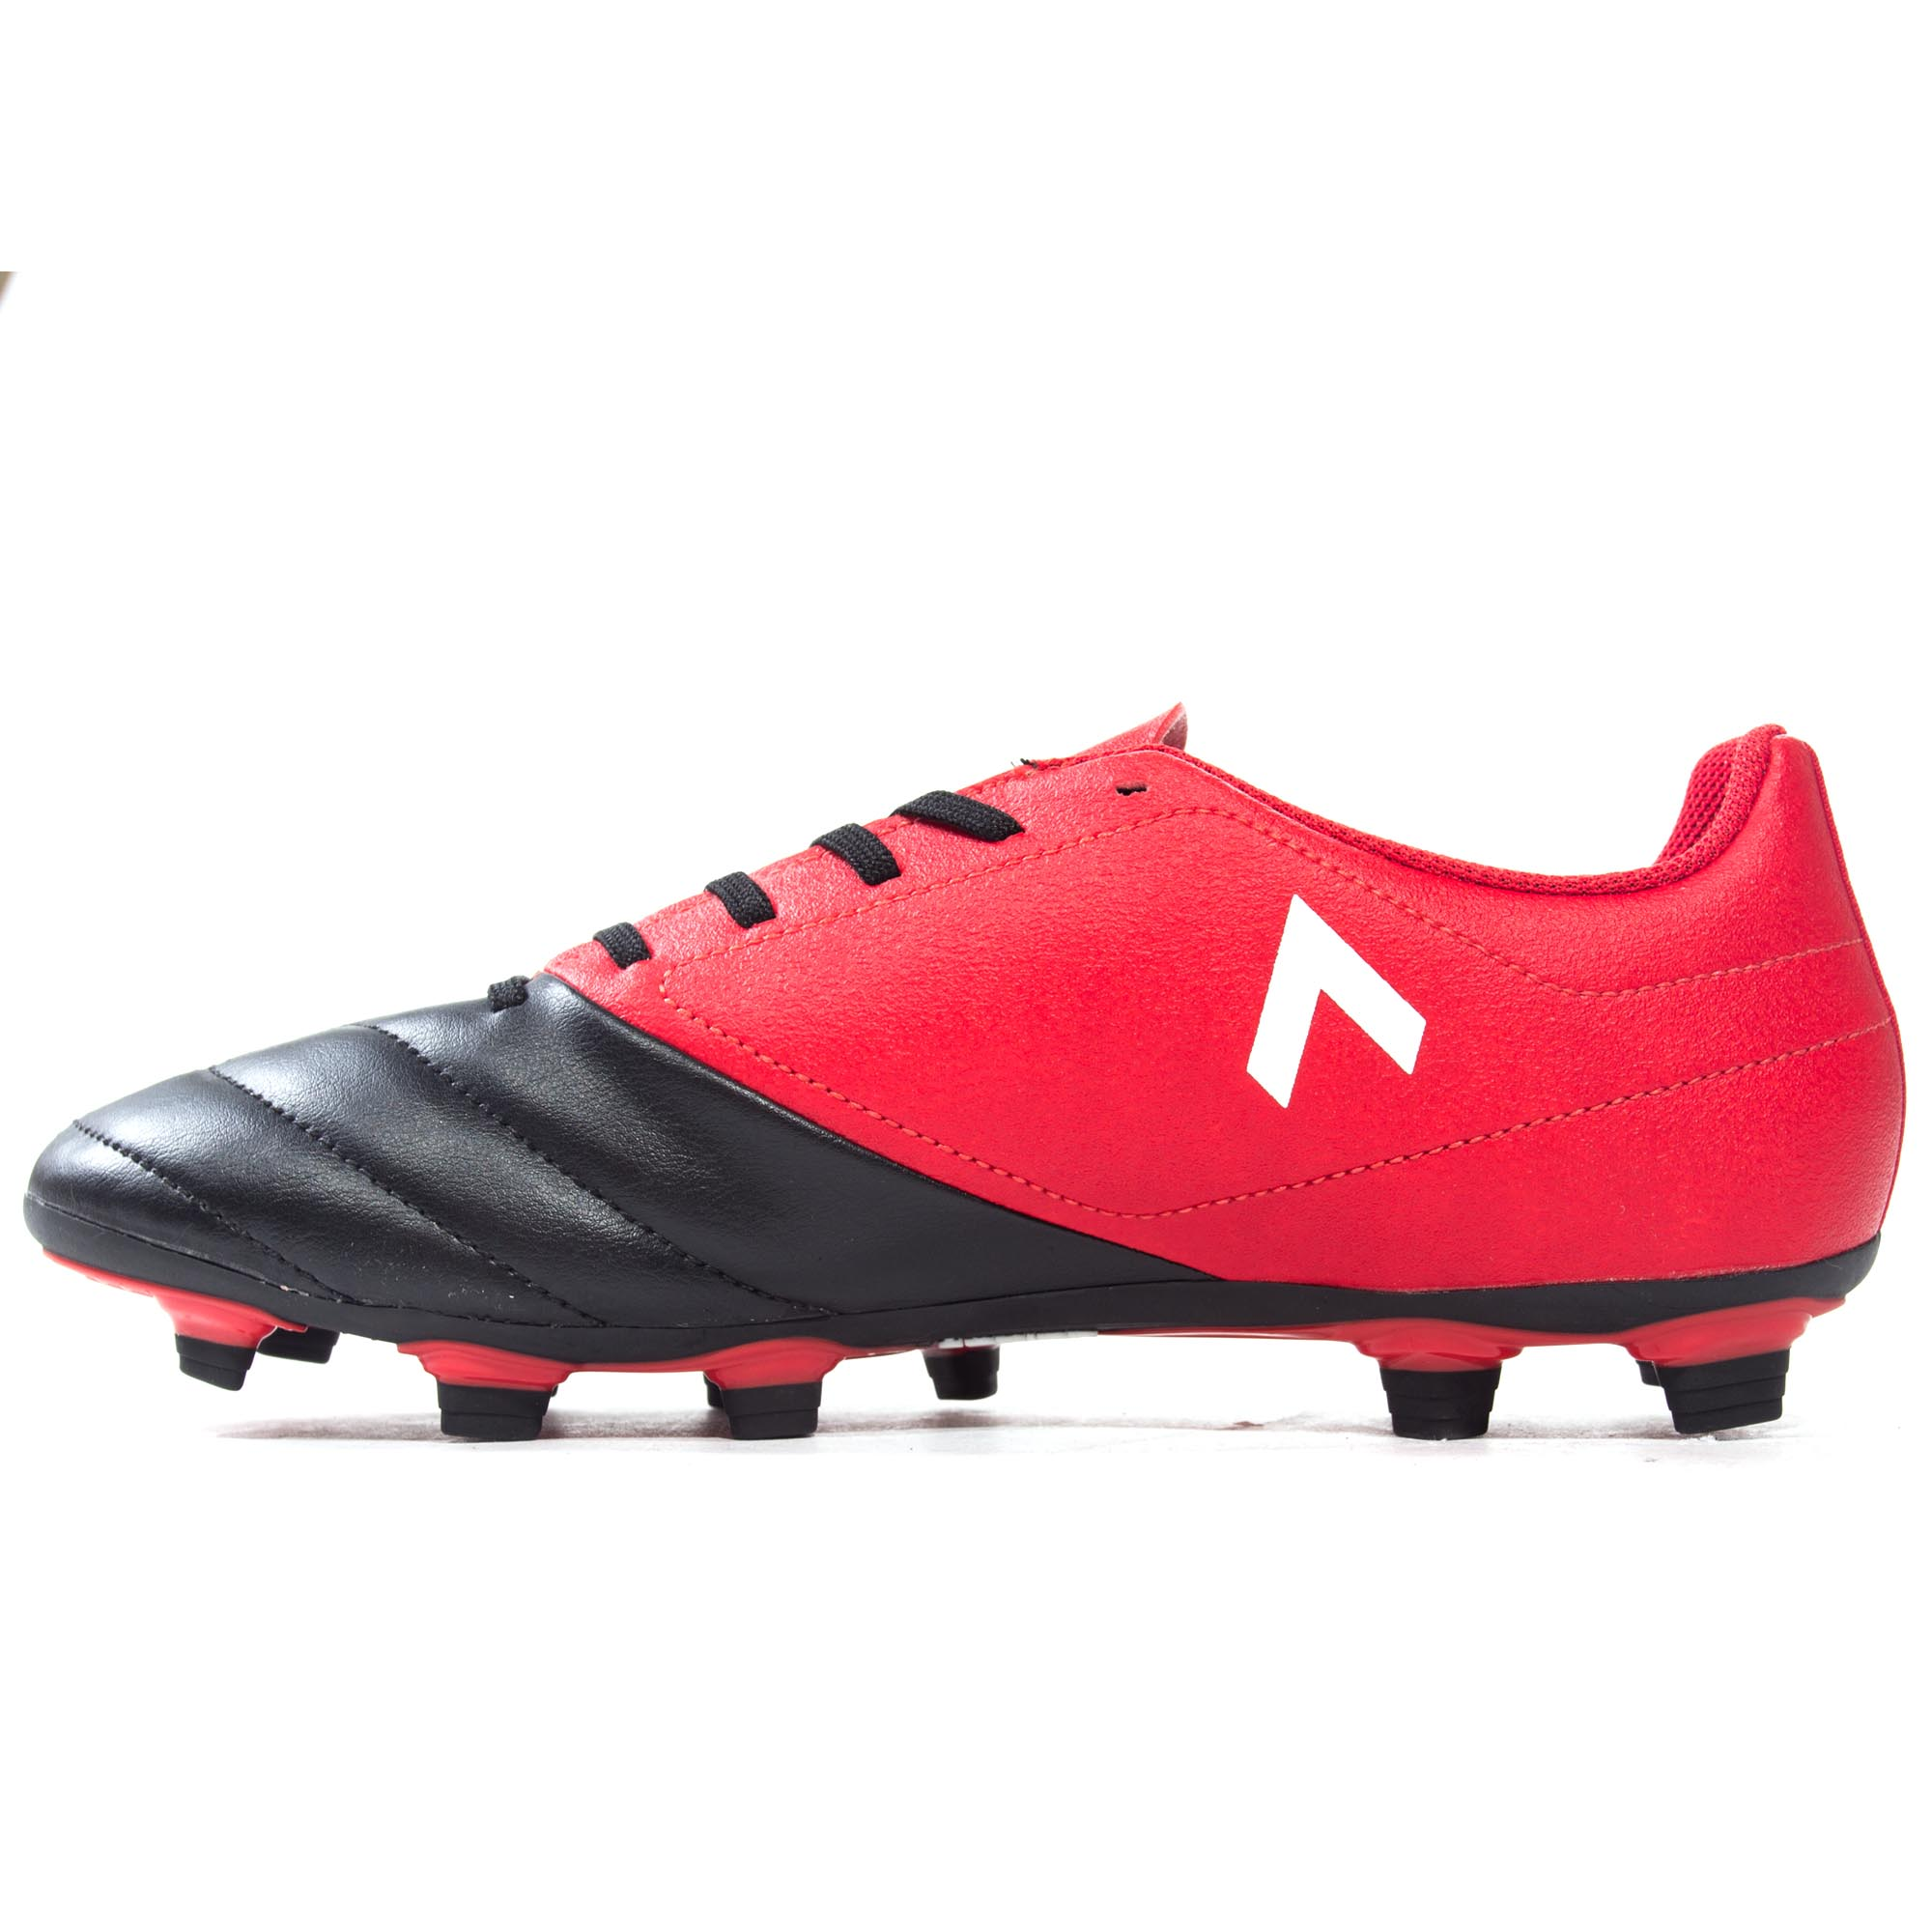 miniature 8 - ADIDAS-ACE-17-4-FG-Firm-Ground-pour-homme-Football-Boot-Noir-Rouge